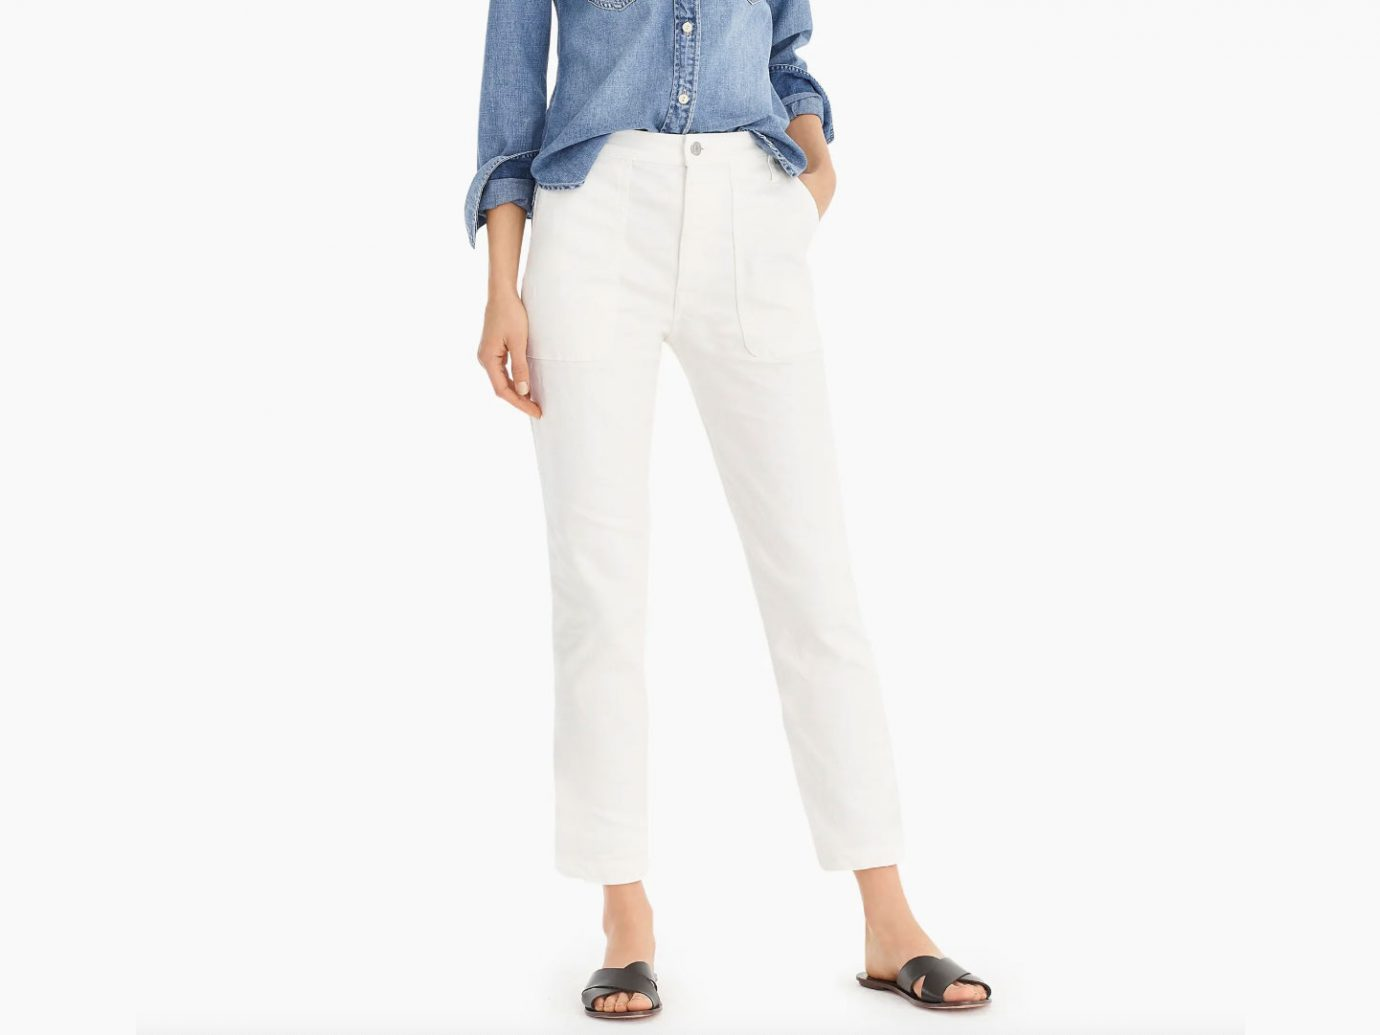 J.Crew Straight-Leg Crop Jean in Garment-Dyed Denim